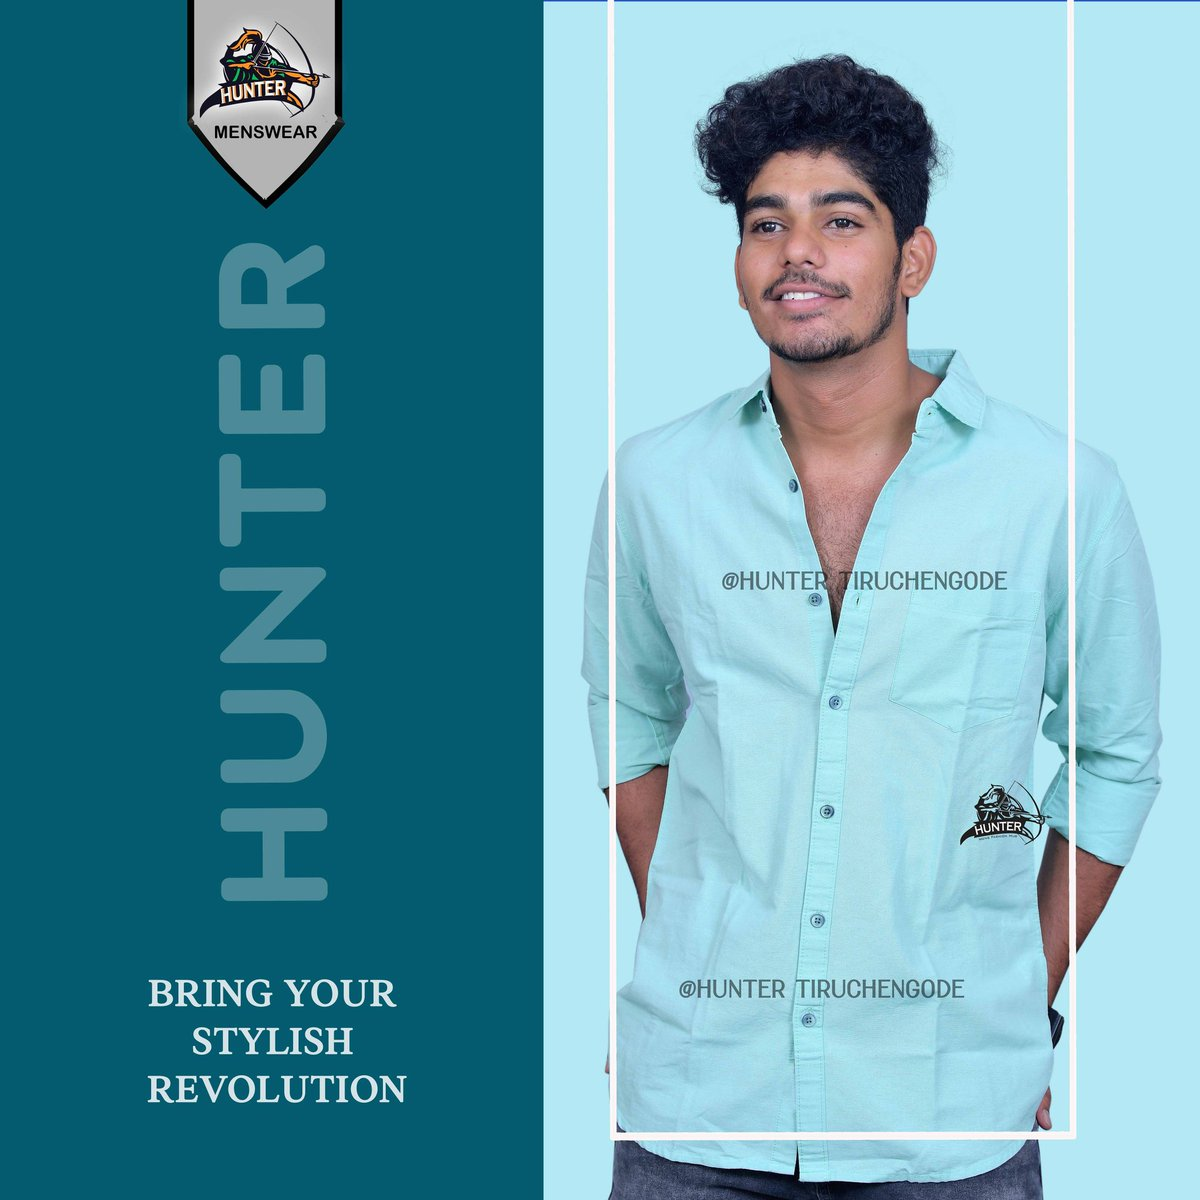 #plainshirts #brandedtshirt #stylish #revolution #post #partywear #festivals #season #casual #diwali #tiruchengode #namakkal #sankagiri #rasipuram #huntermodels #huntermenswear #tn34 #tn28  #tn88 #youngboy #winterfashion #partywearsuits #luxuryoutfit #ootd #shopping #superior https://t.co/TkCpURkOI0